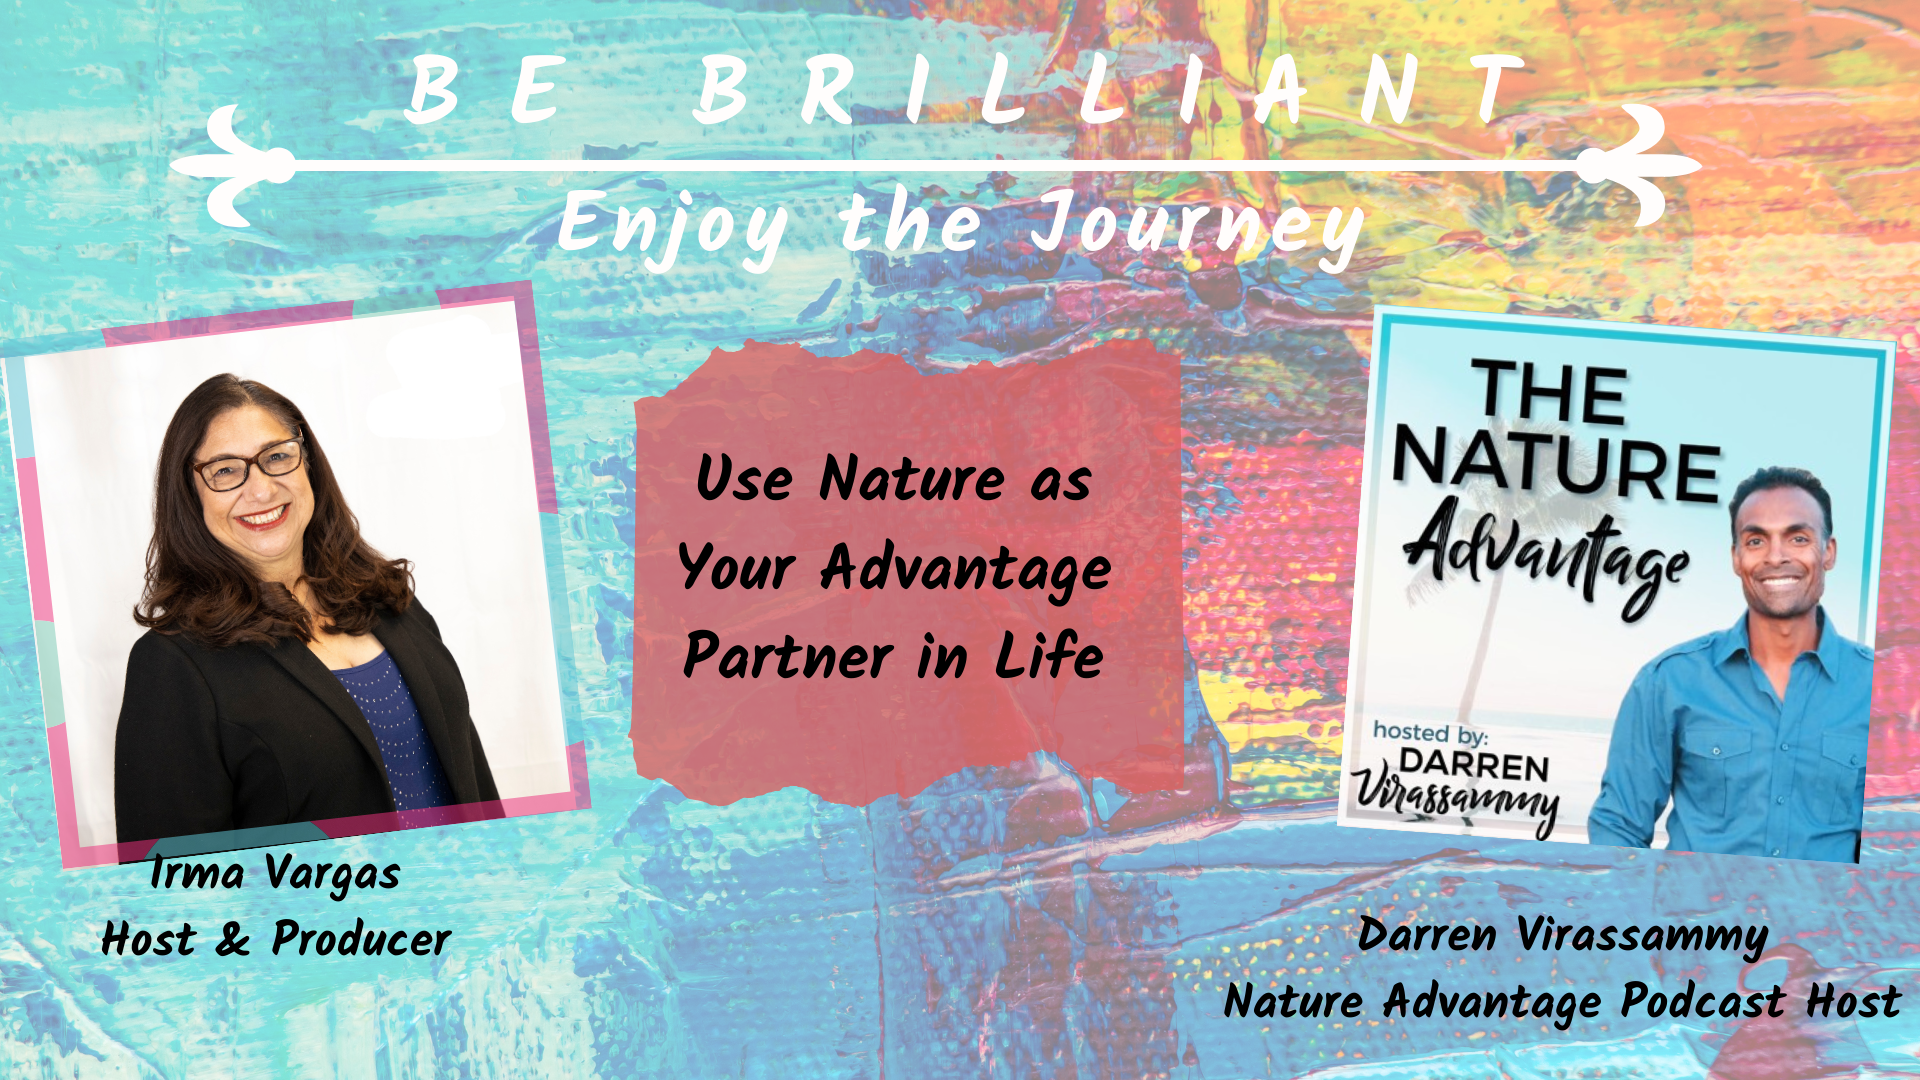 Use Nature as Your Advantage Partner in Life